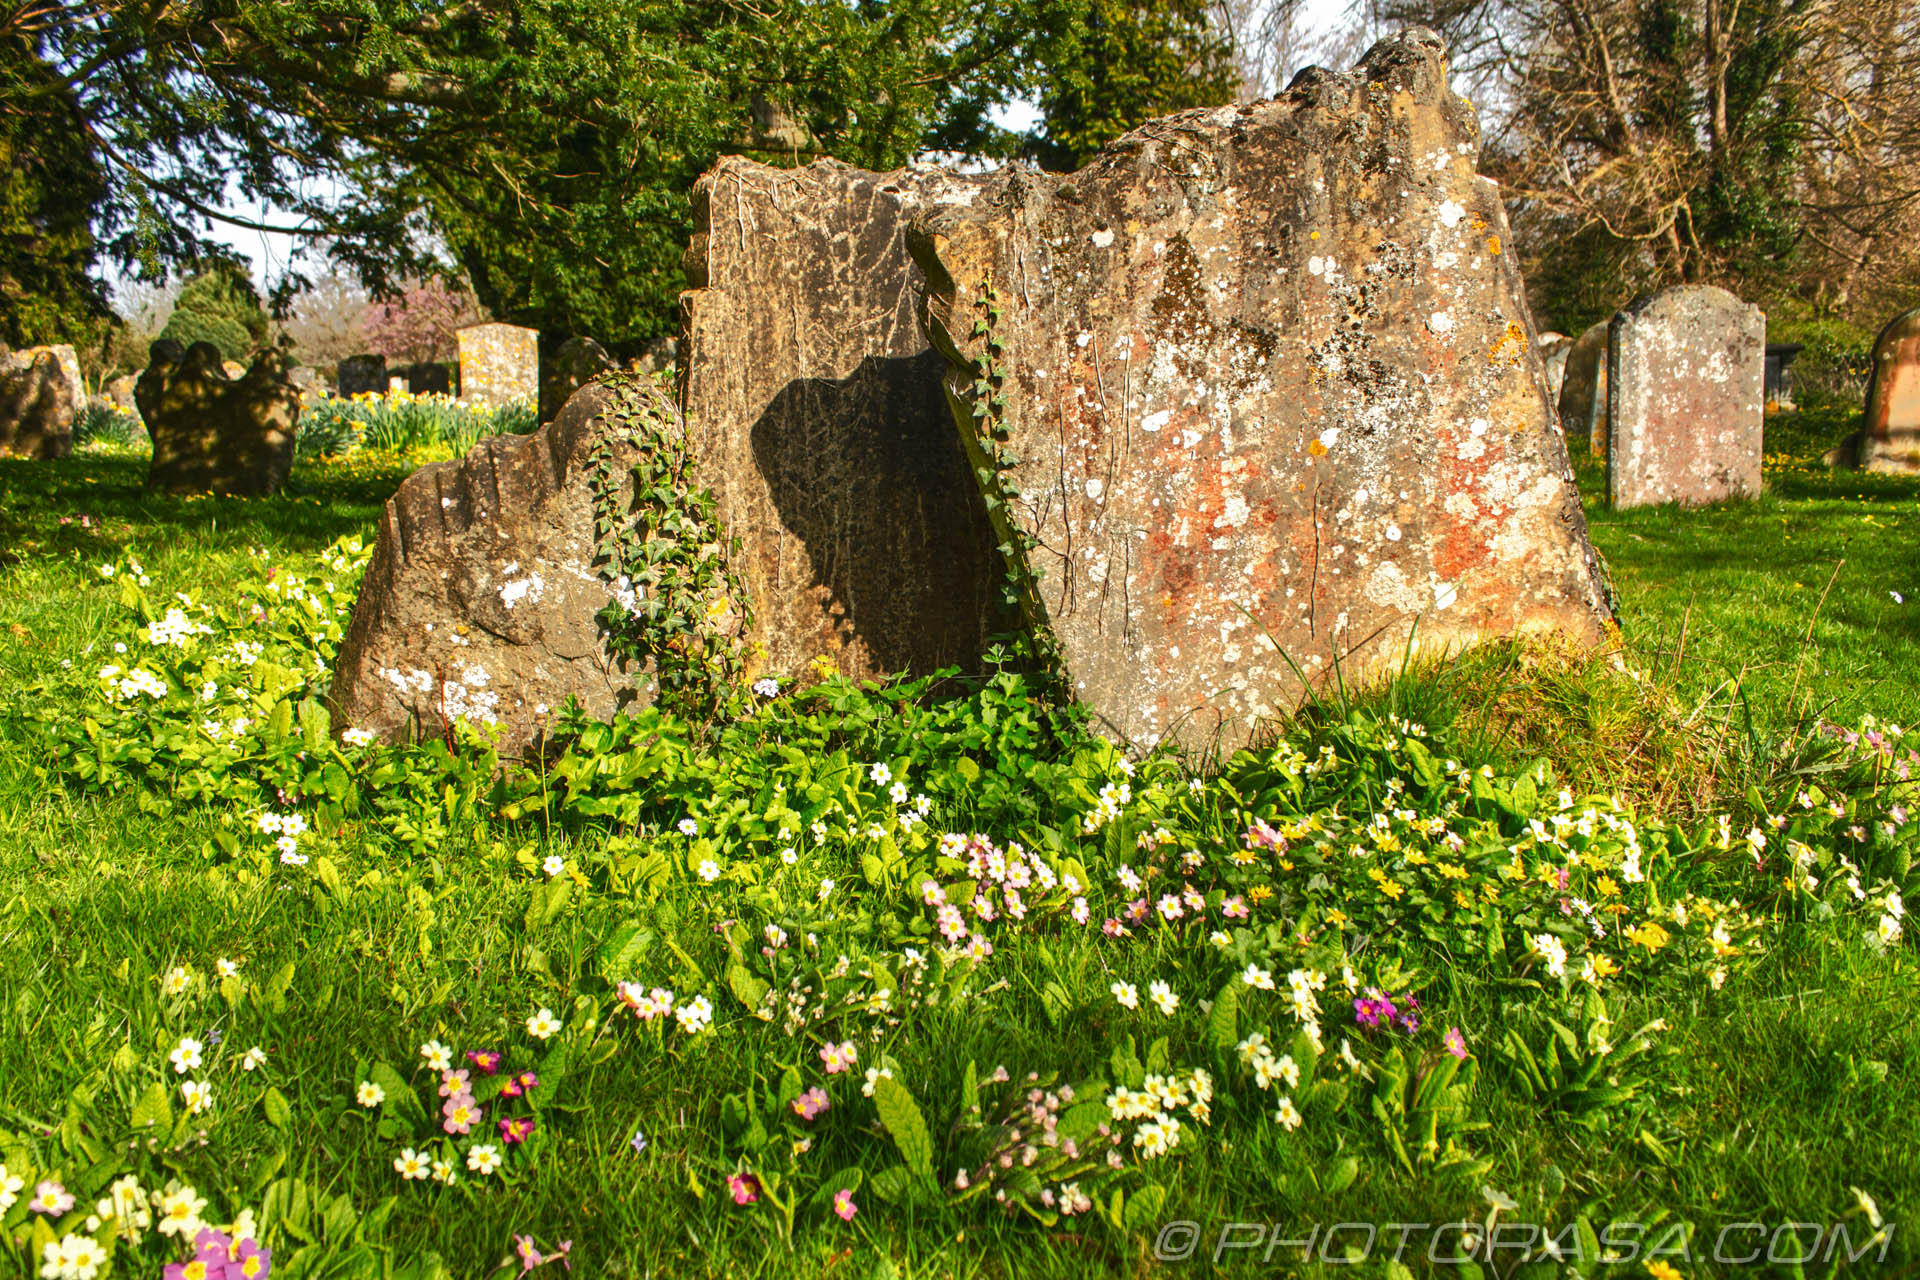 http://photorasa.com/saints-church-staplehurst-kent/primroses-next-to-bunch-of-graves/